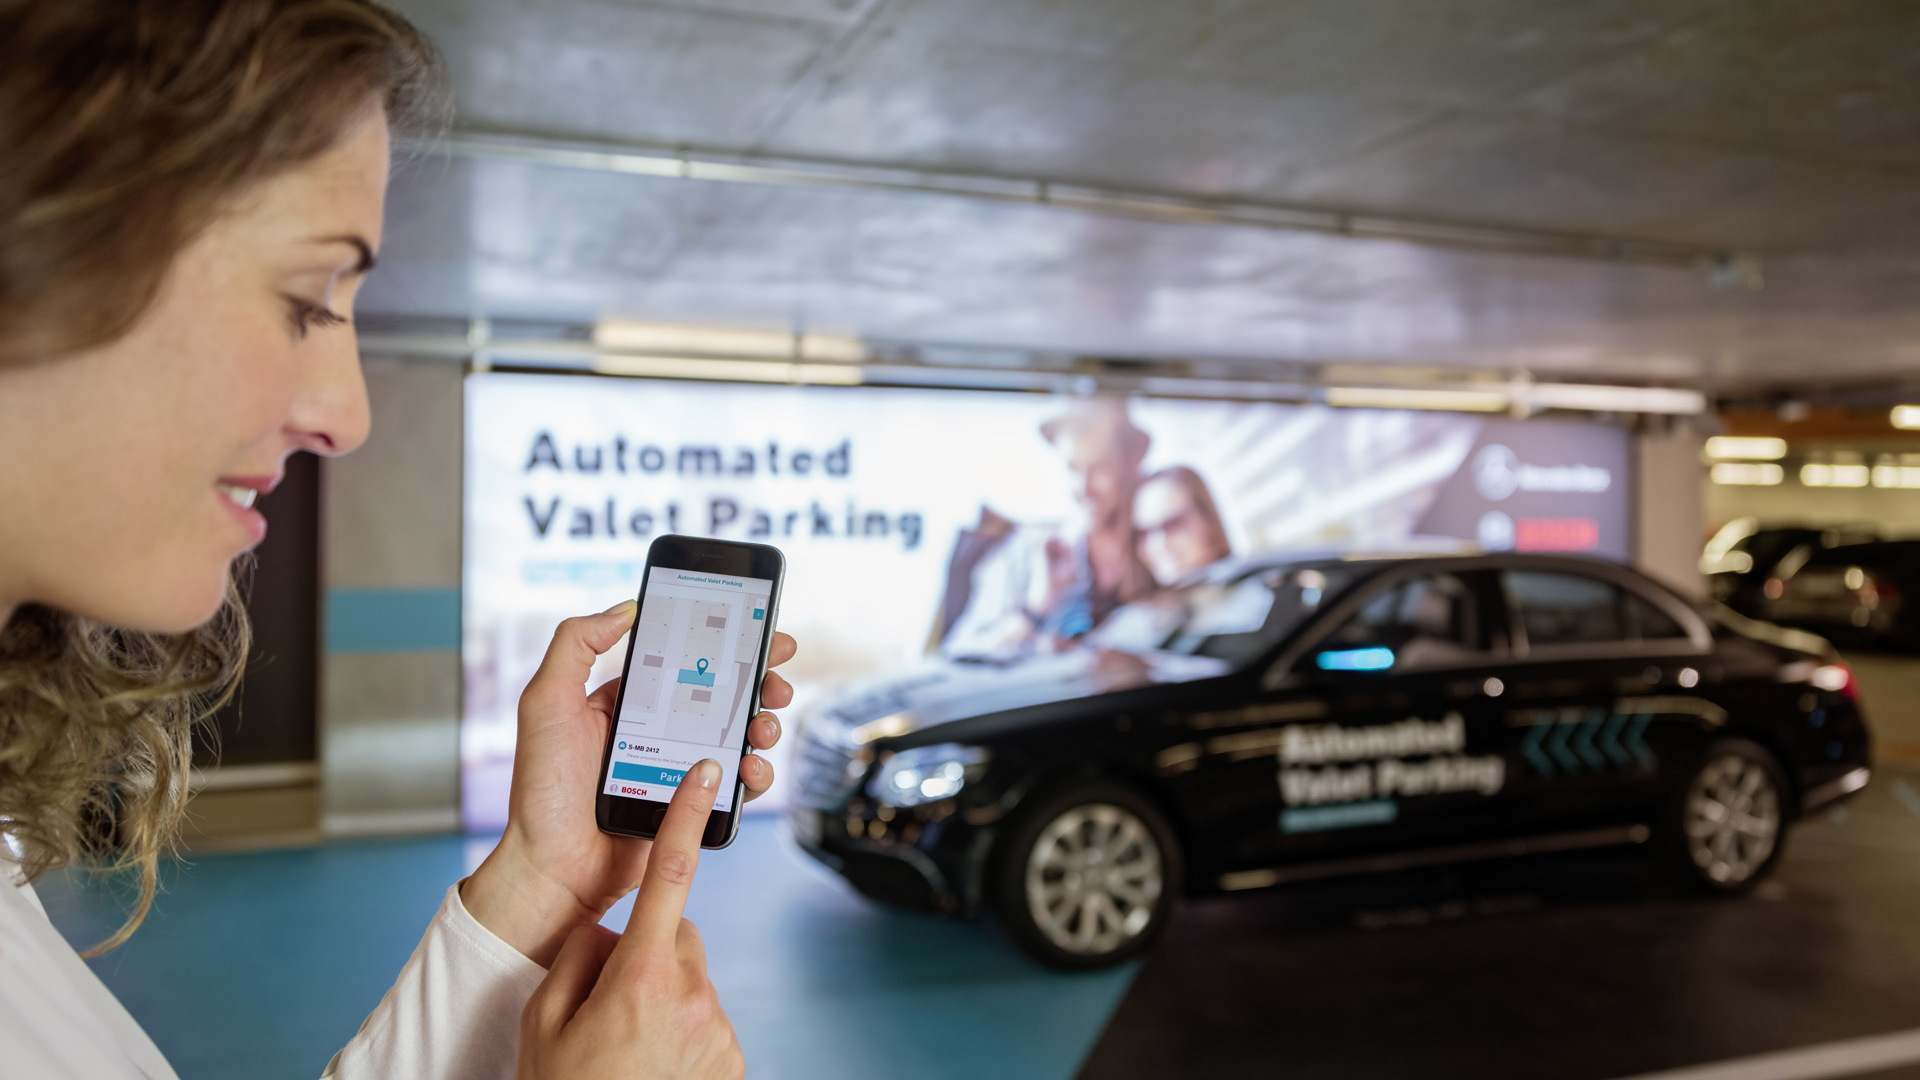 Mercedes-Benz and Bosch Automated Valet Parking